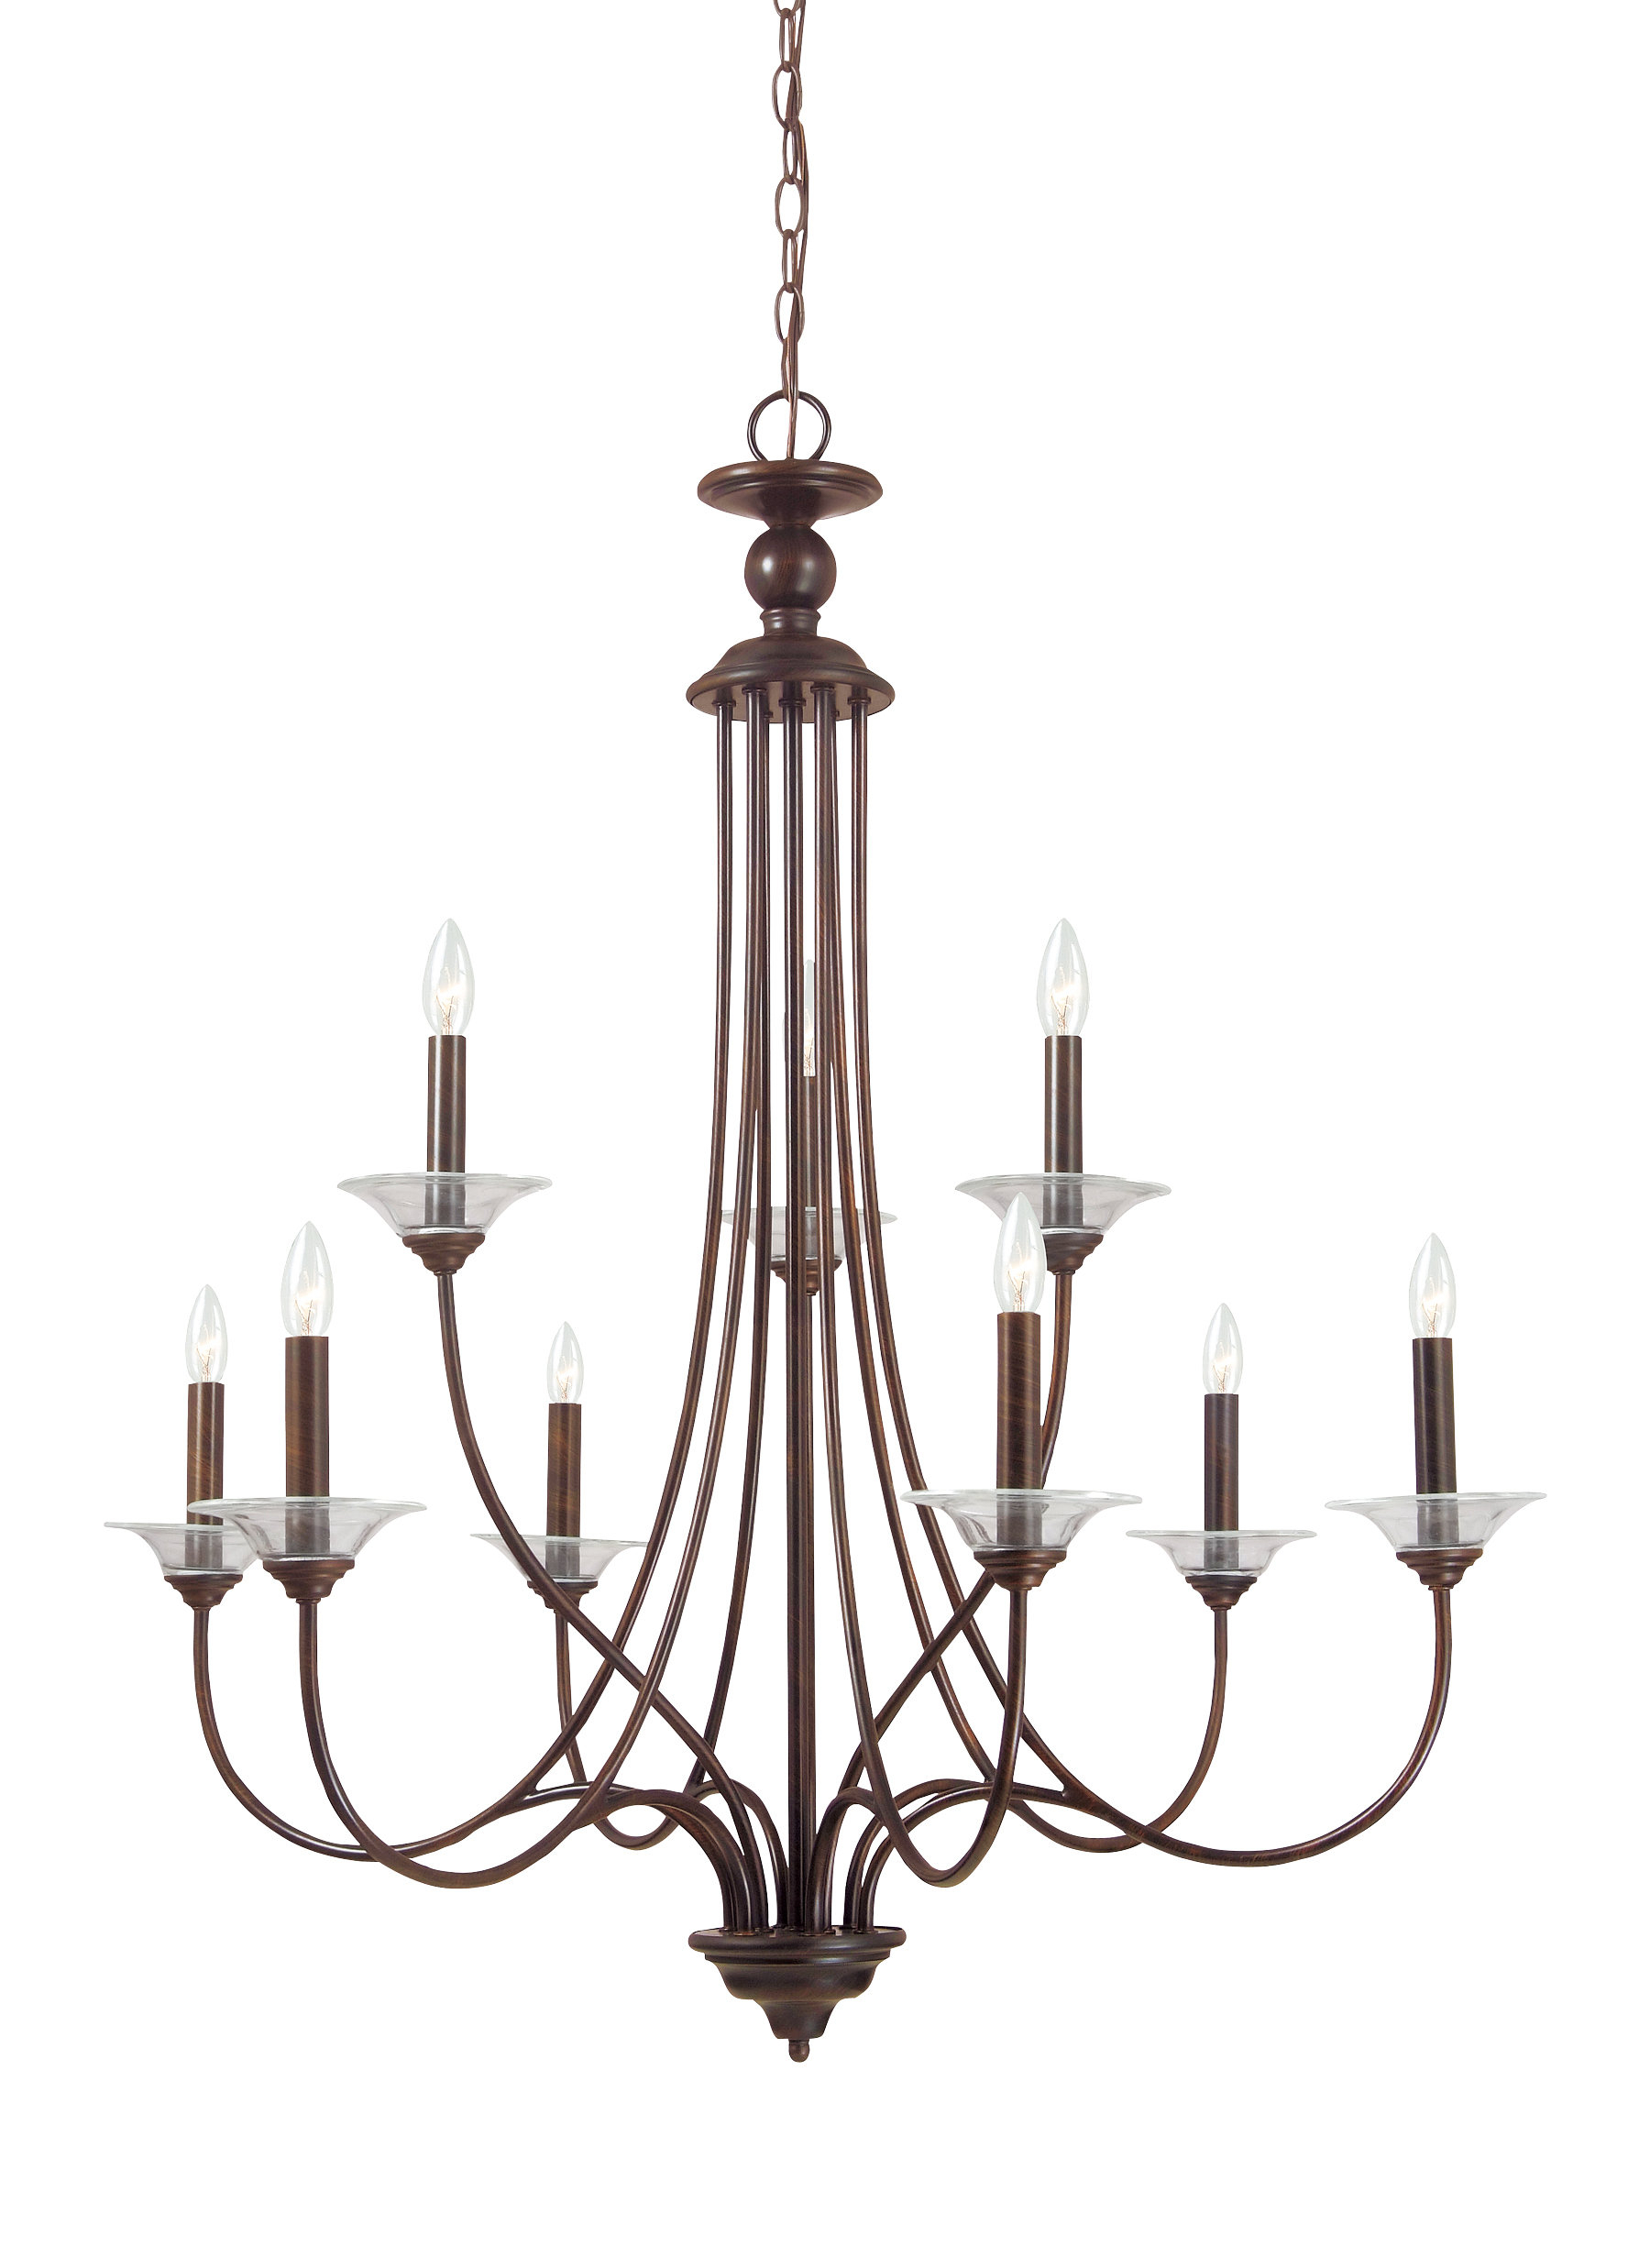 Barbro 9 Light Chandelier With Kenedy 9 Light Candle Style Chandeliers (View 5 of 30)